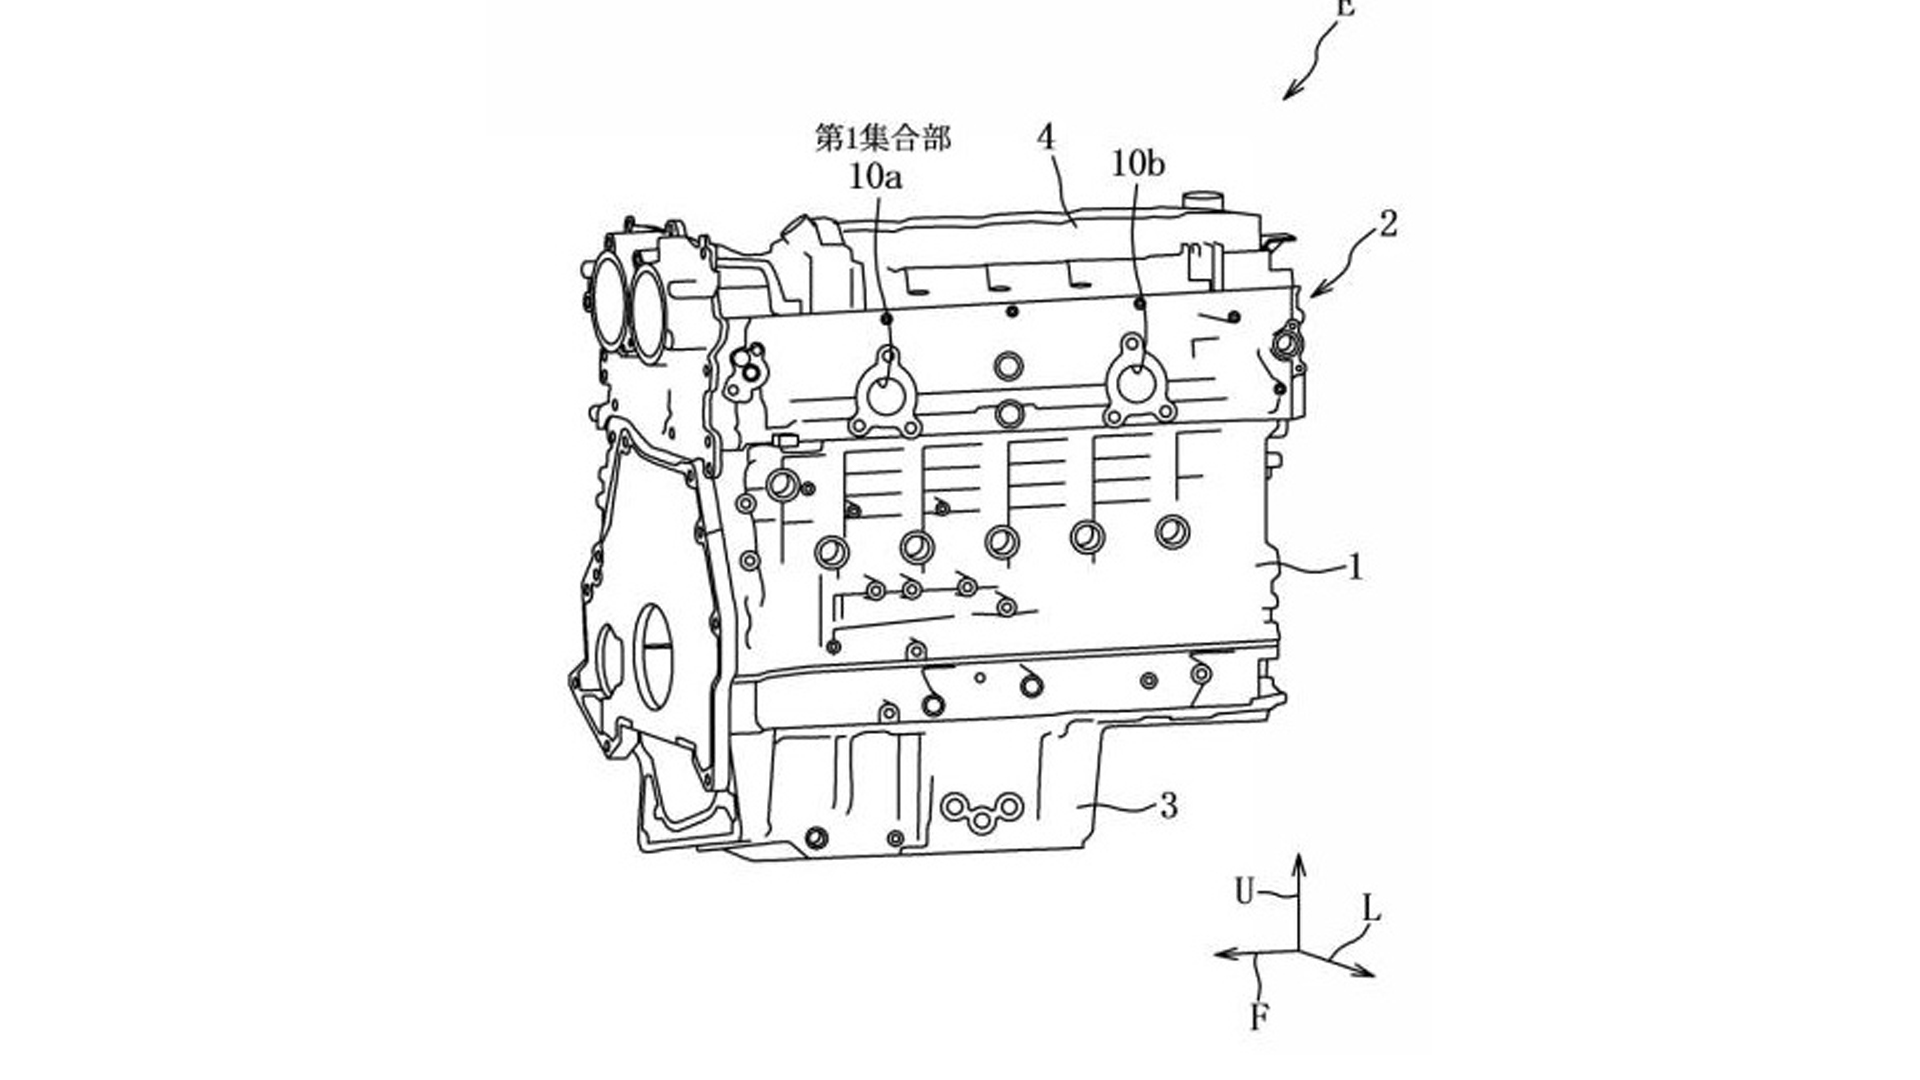 Mazda-engine-gearbox-patents-1